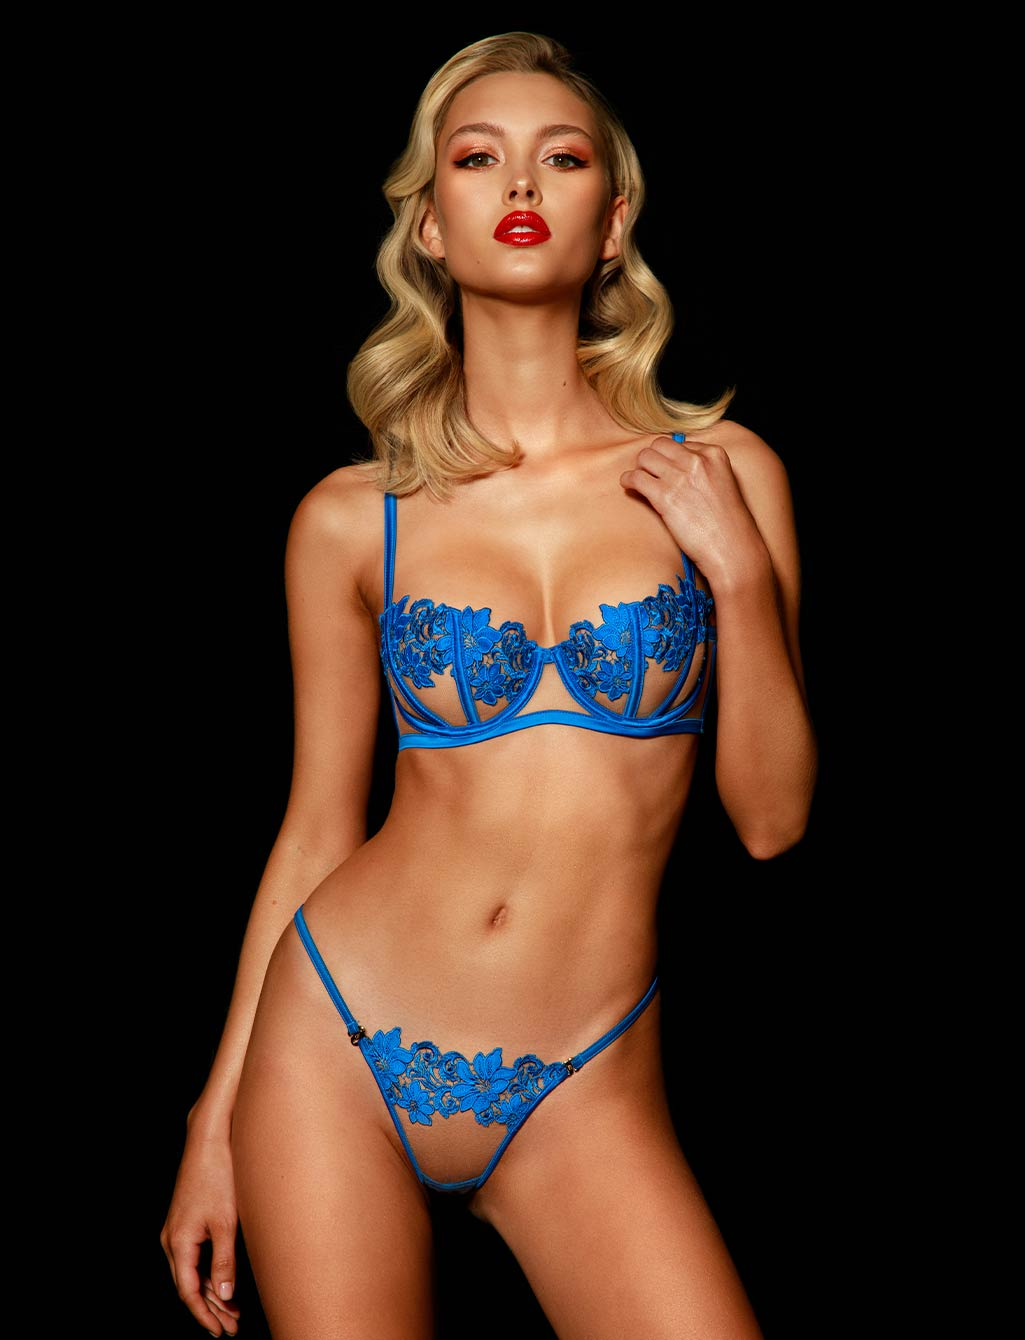 Amelie Blue Thong - Shop Thong & G Strings | Honey Birdette